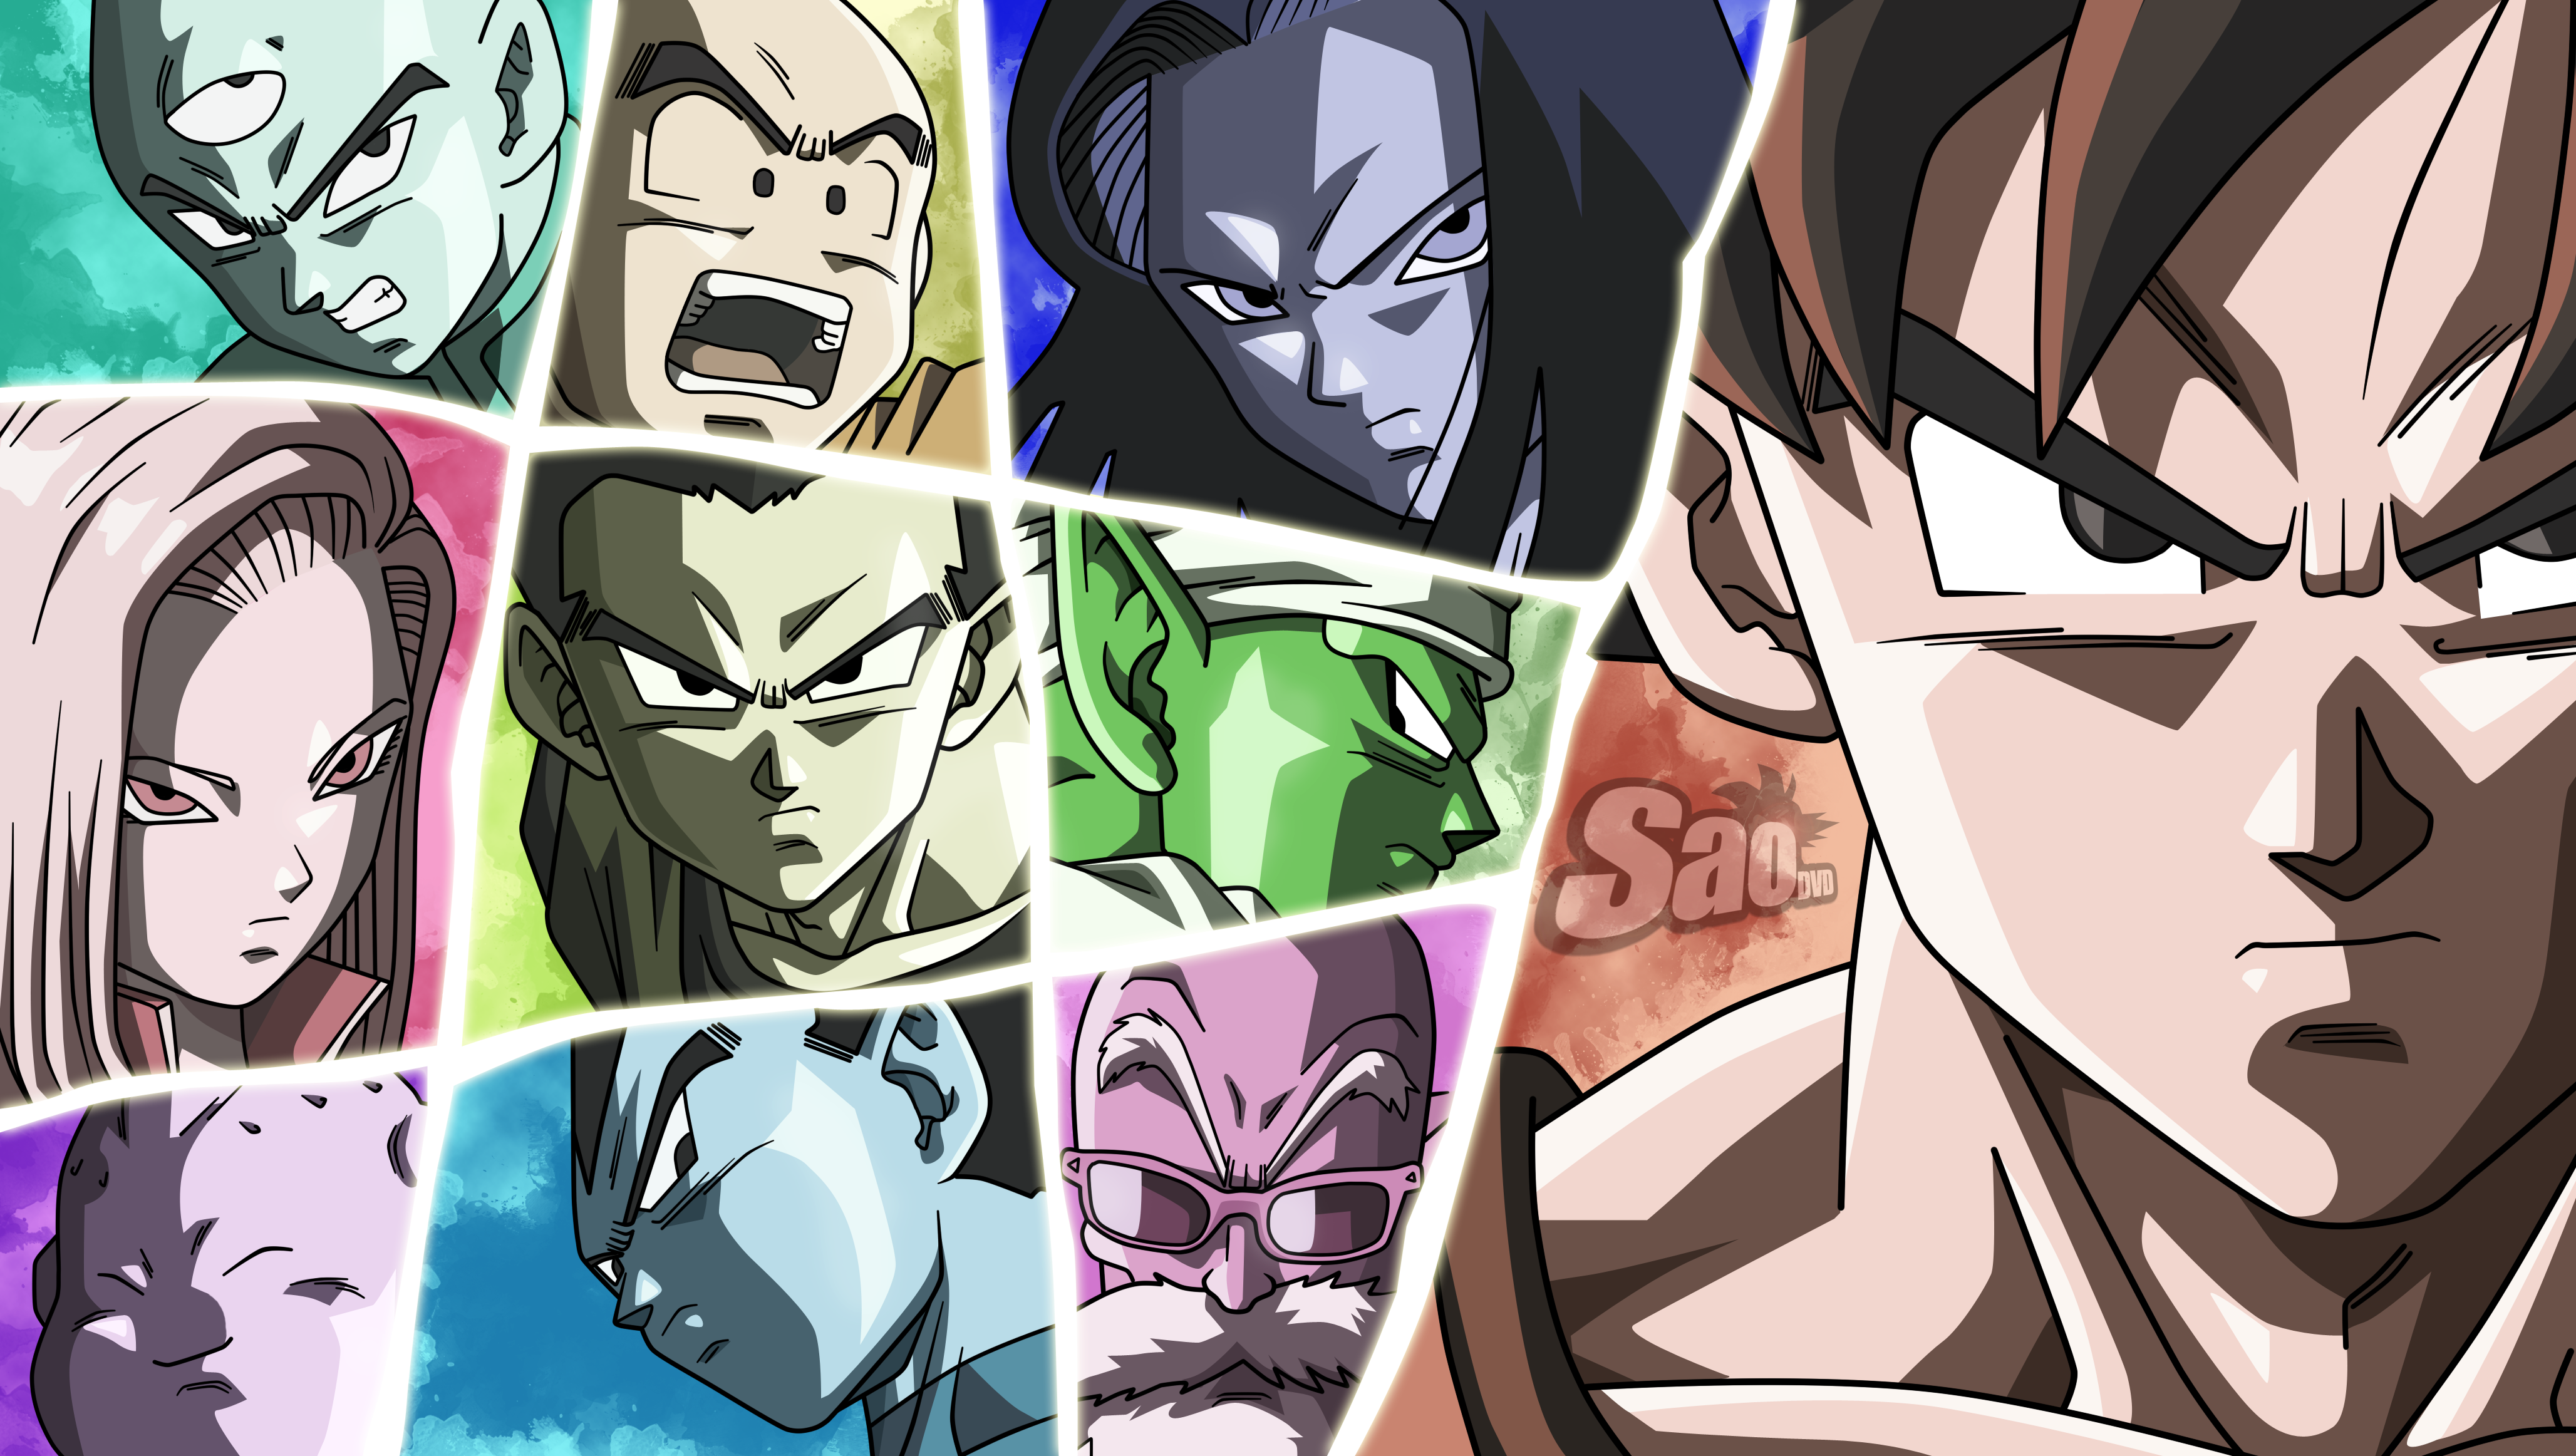 61 Android 17 Dragon Ball Hd Wallpapers Background Images